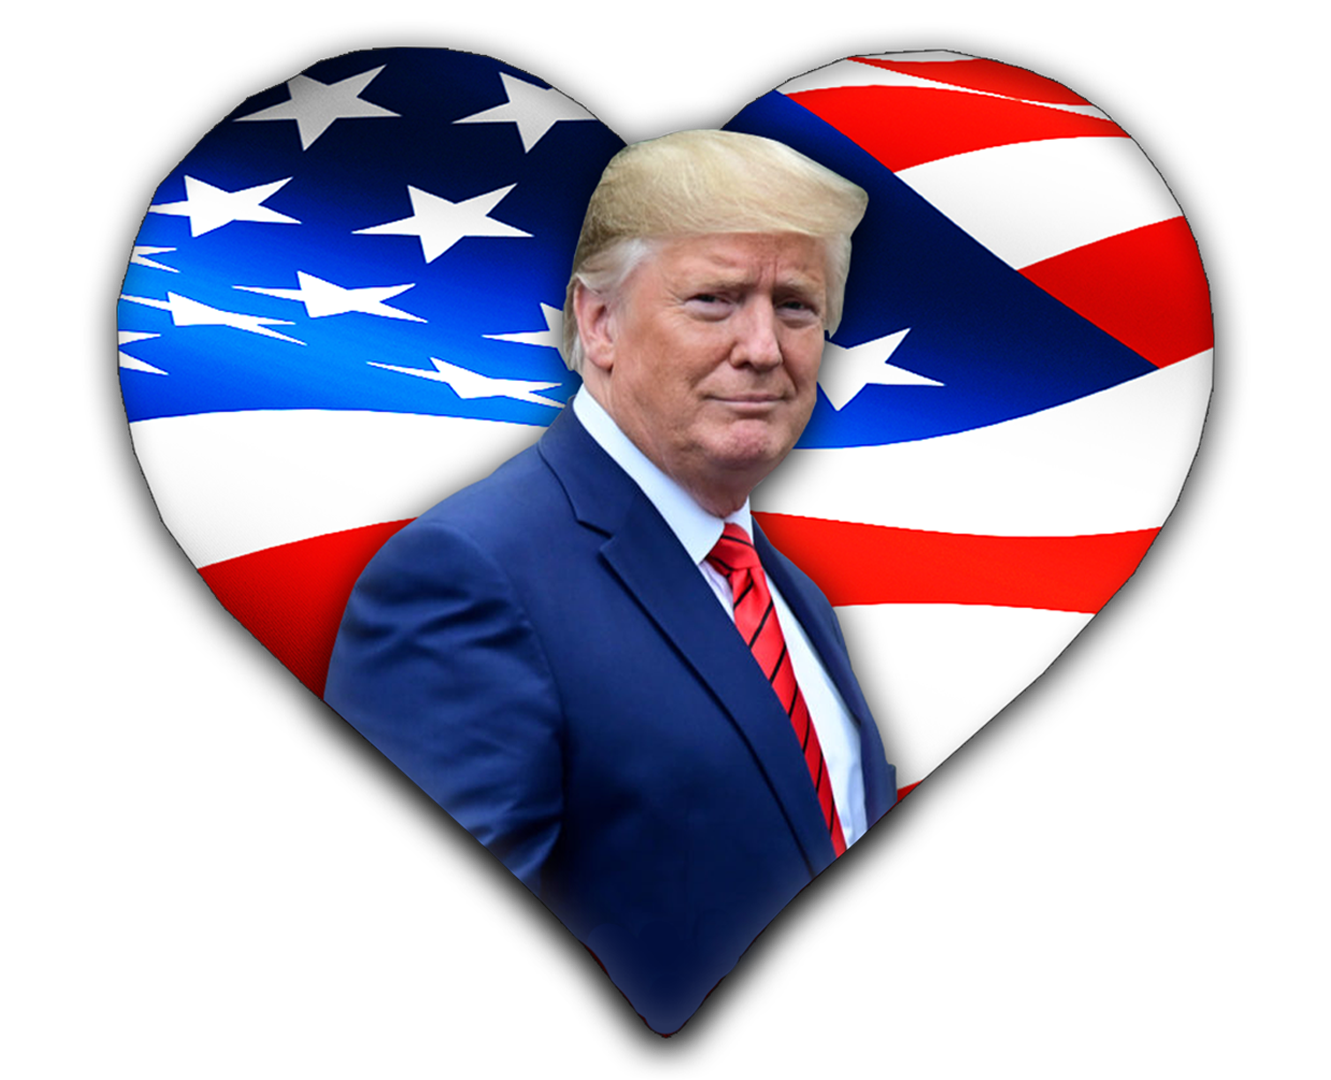 KEEP AMERICA GREAT #Trump2020